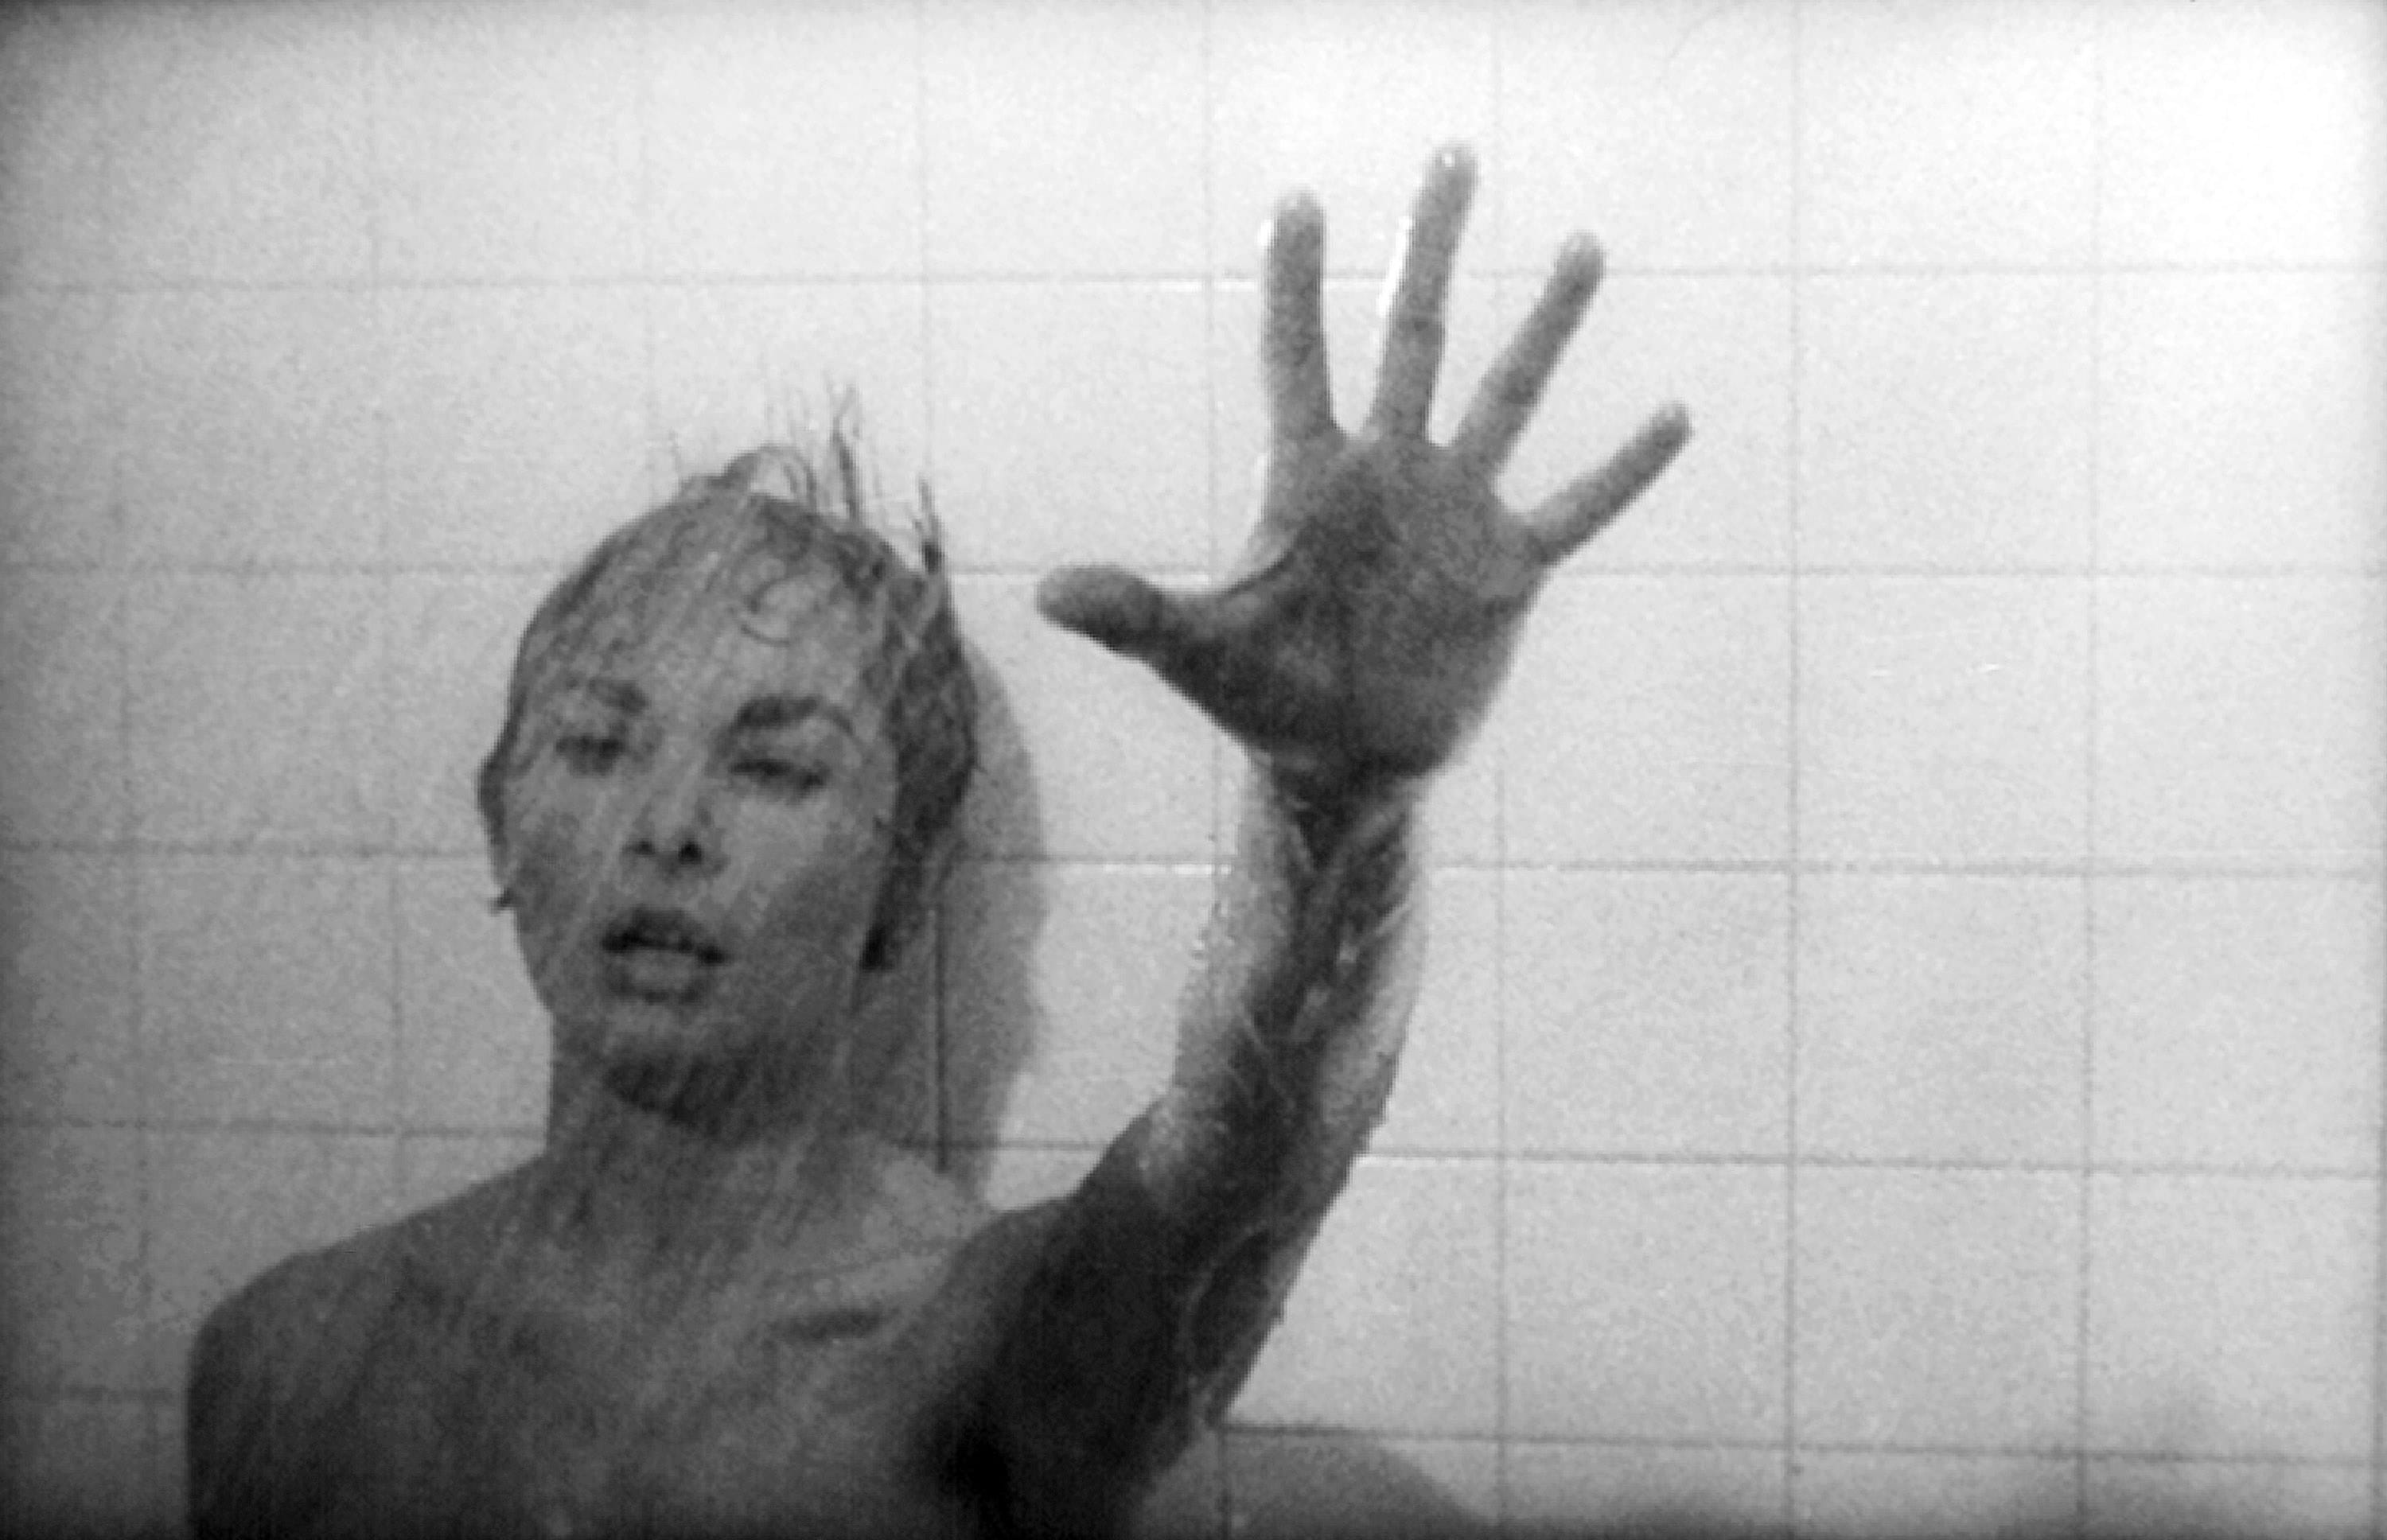 Marion falling in the shower